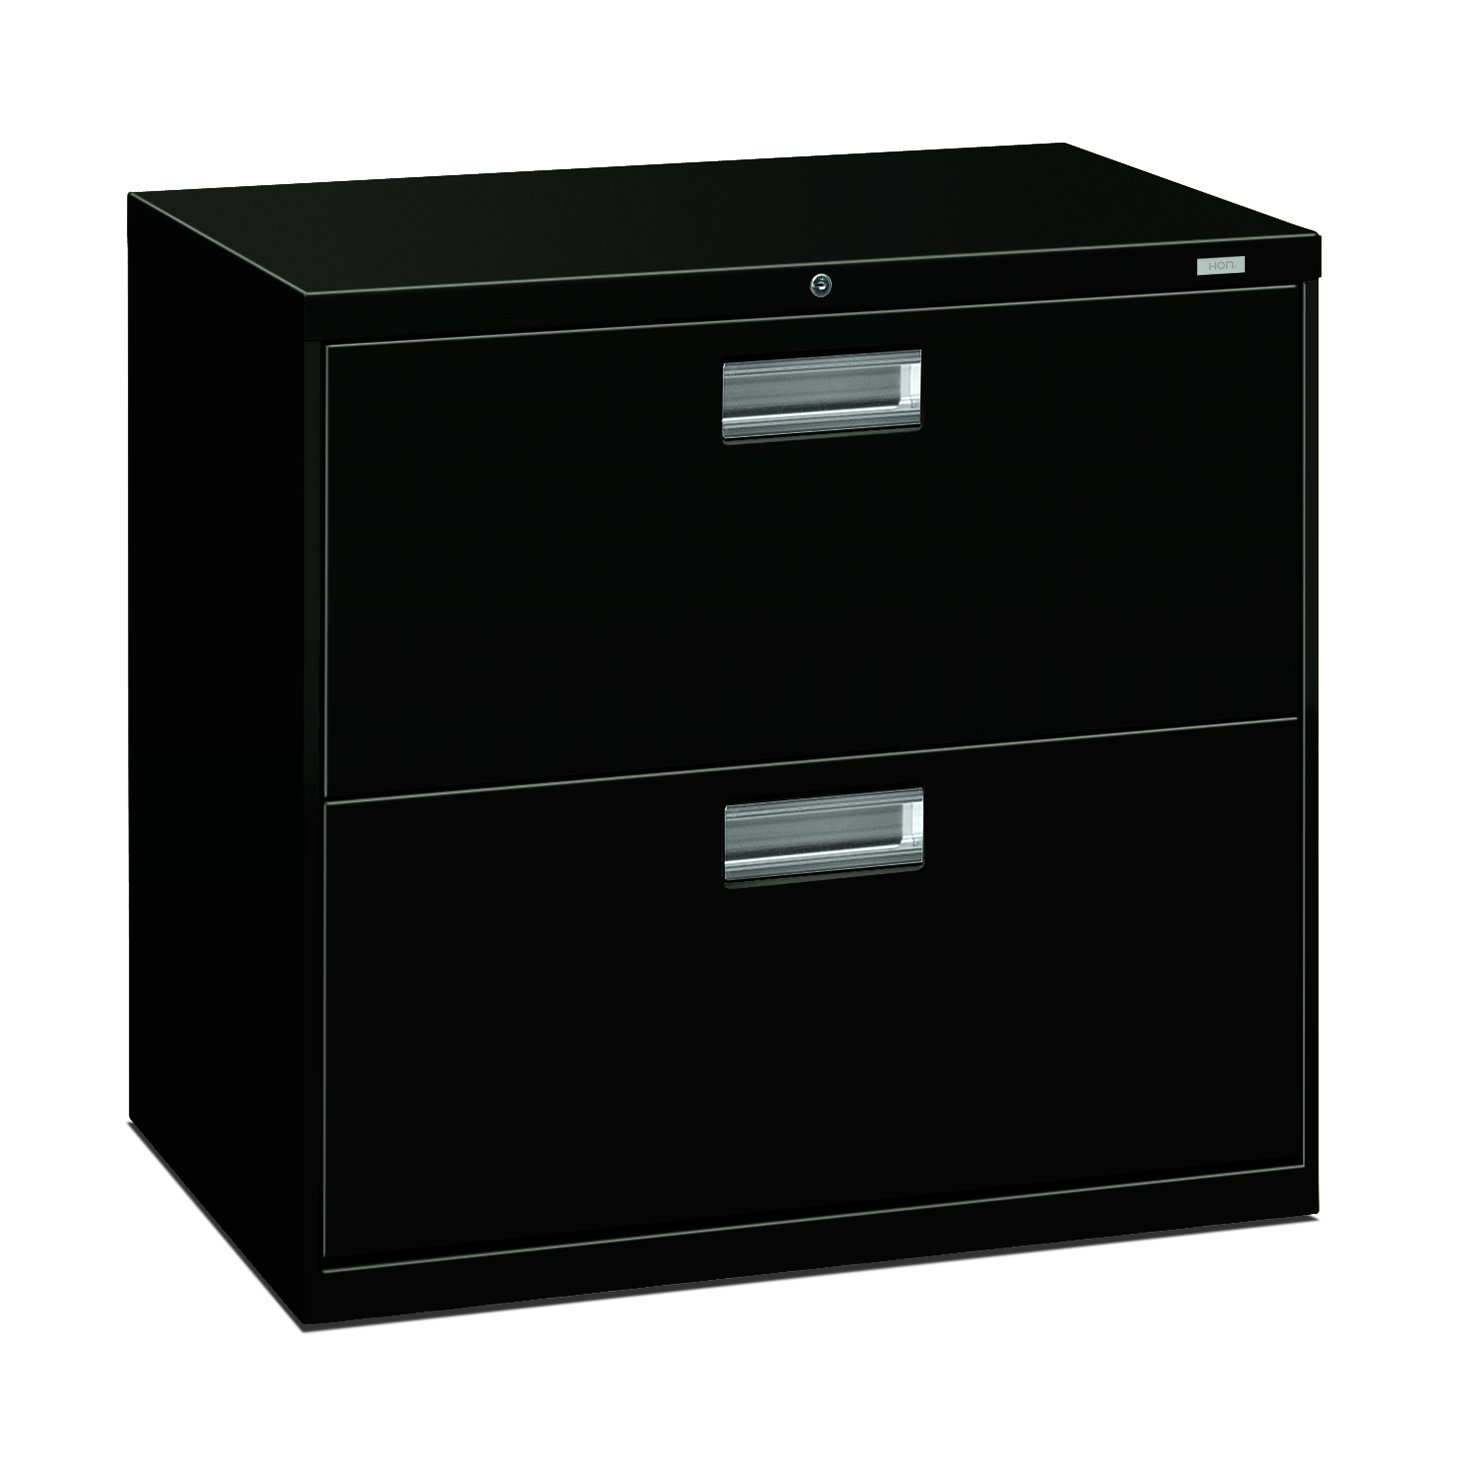 Best Lateral File Cabinet Reviews and Buying Guide 14